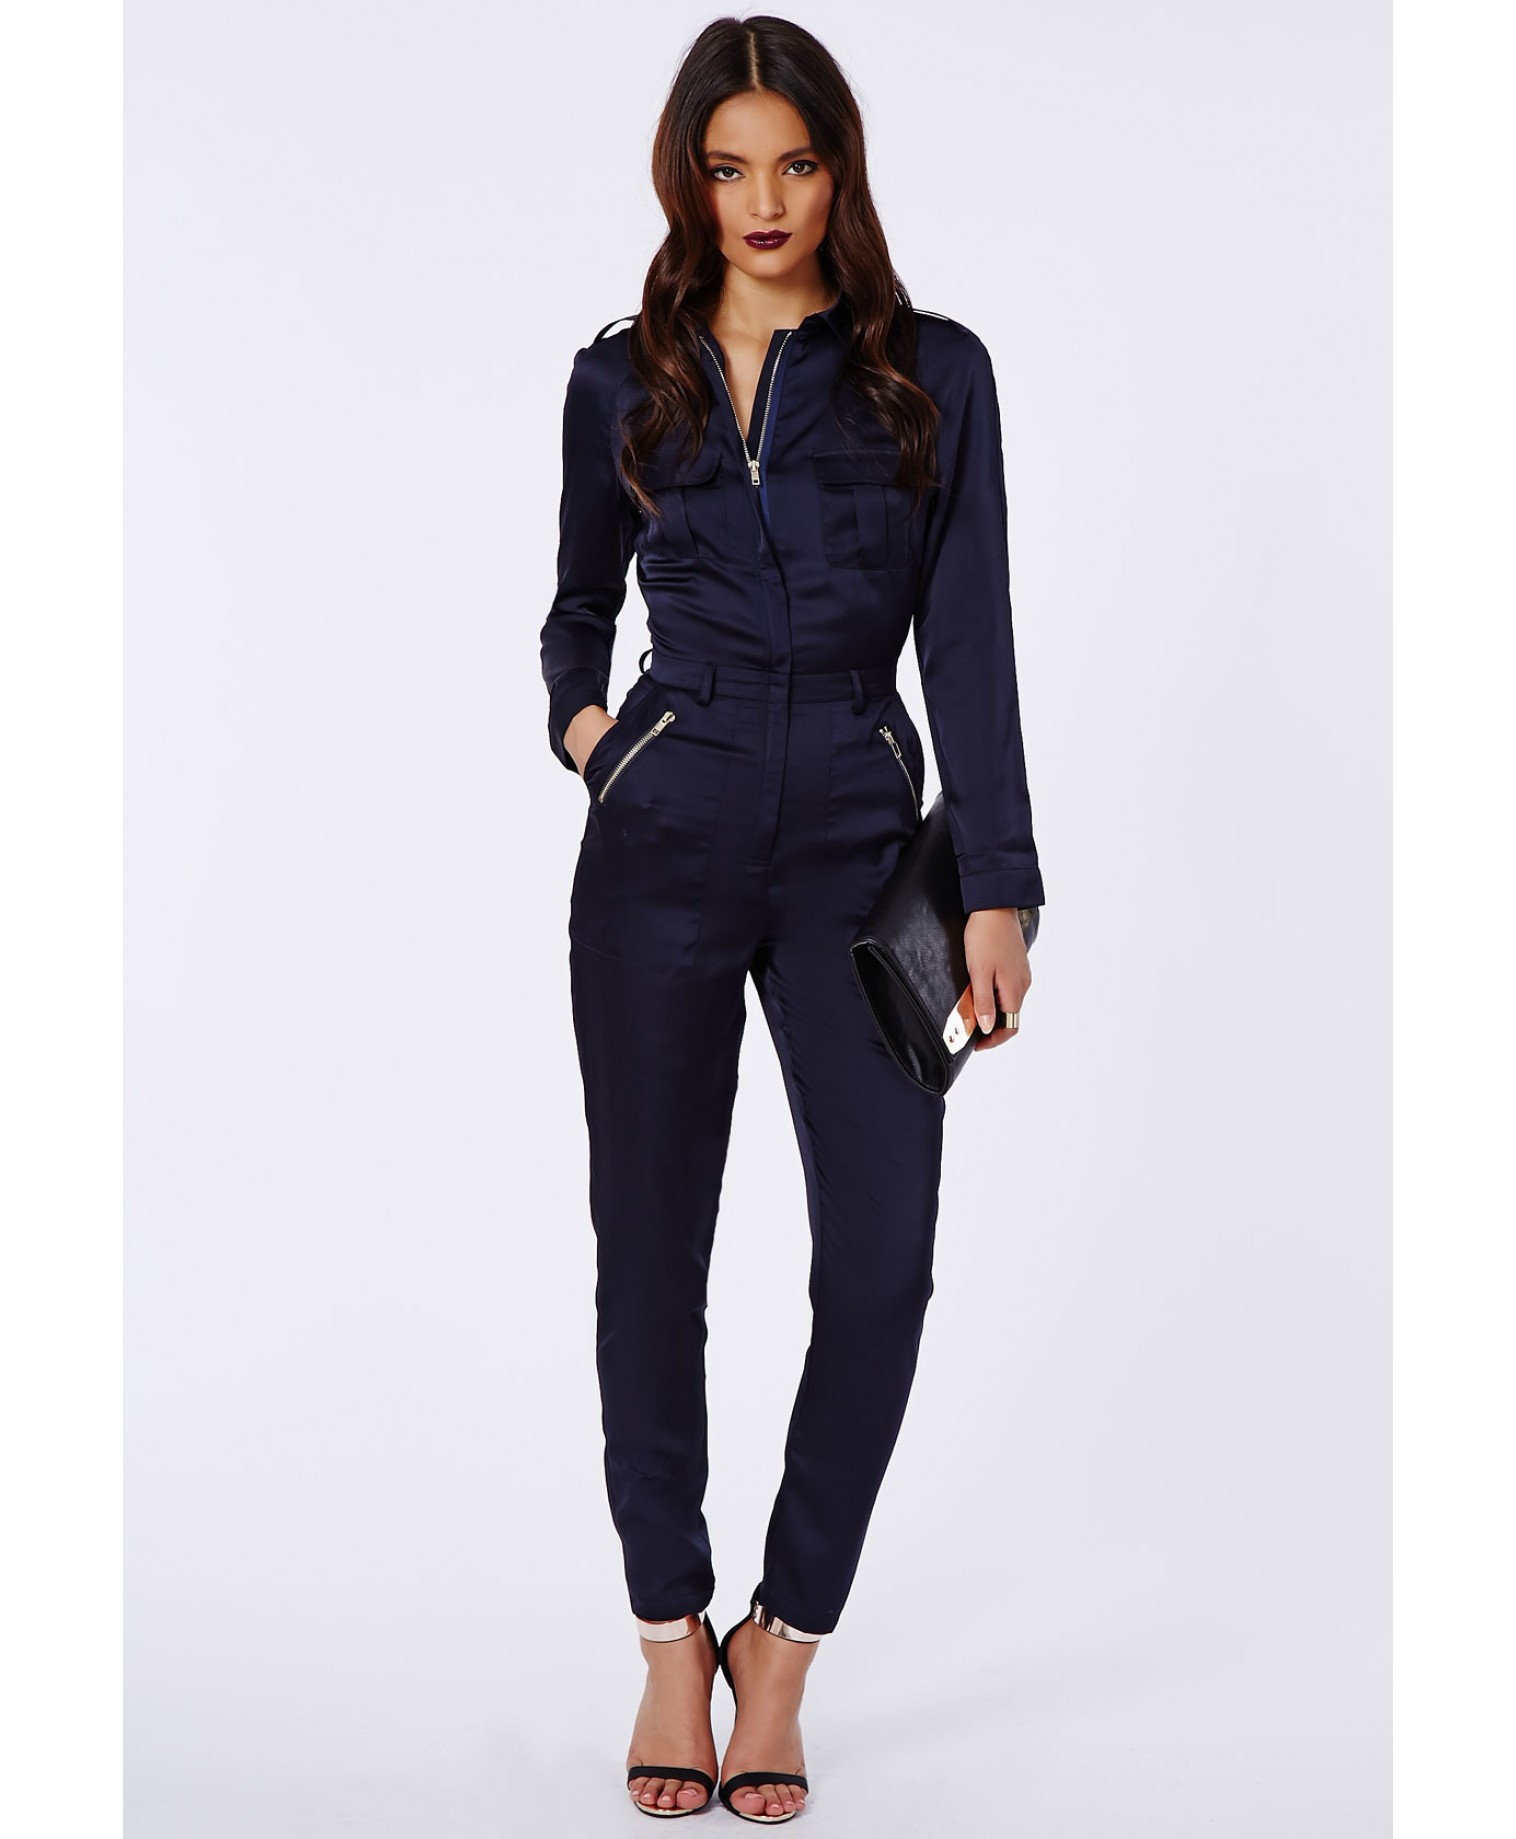 Long Sleeve. safari look belted #22 $ safari look beltless # $ classic poplin belted #93 $ classic poplin beltless # $ mini check belted #29 $ mini check beltless # $ sport stripe belted #85 3 2 or more Jumpsuits. Join Our Jumpsuit Lovers List.